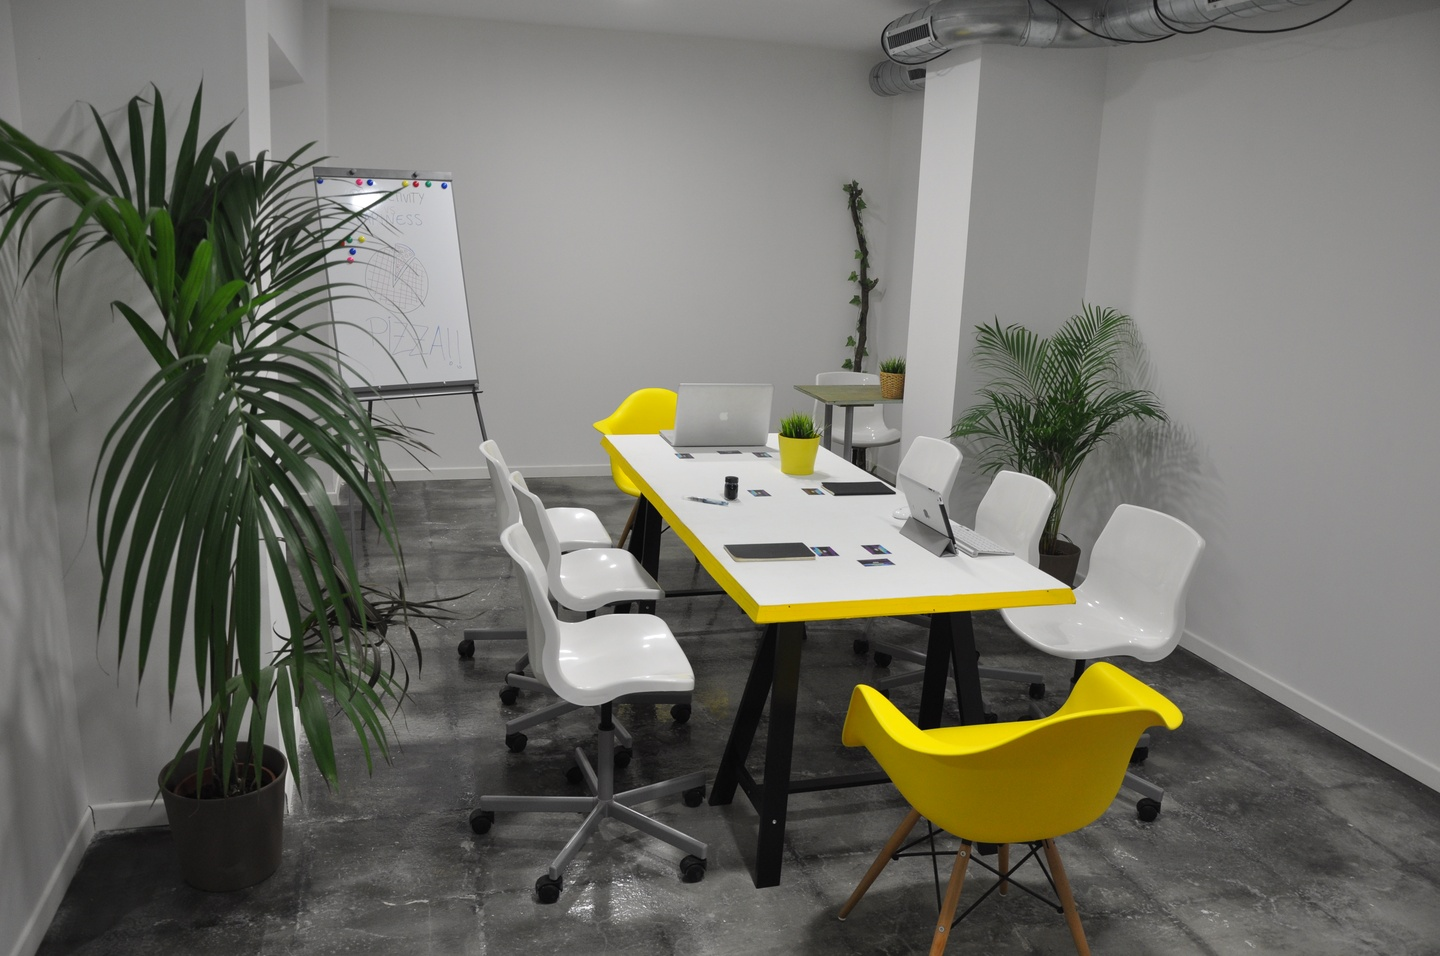 Barcelone conference rooms Espace de Coworking Unnatural Space - Meeting Room image 0